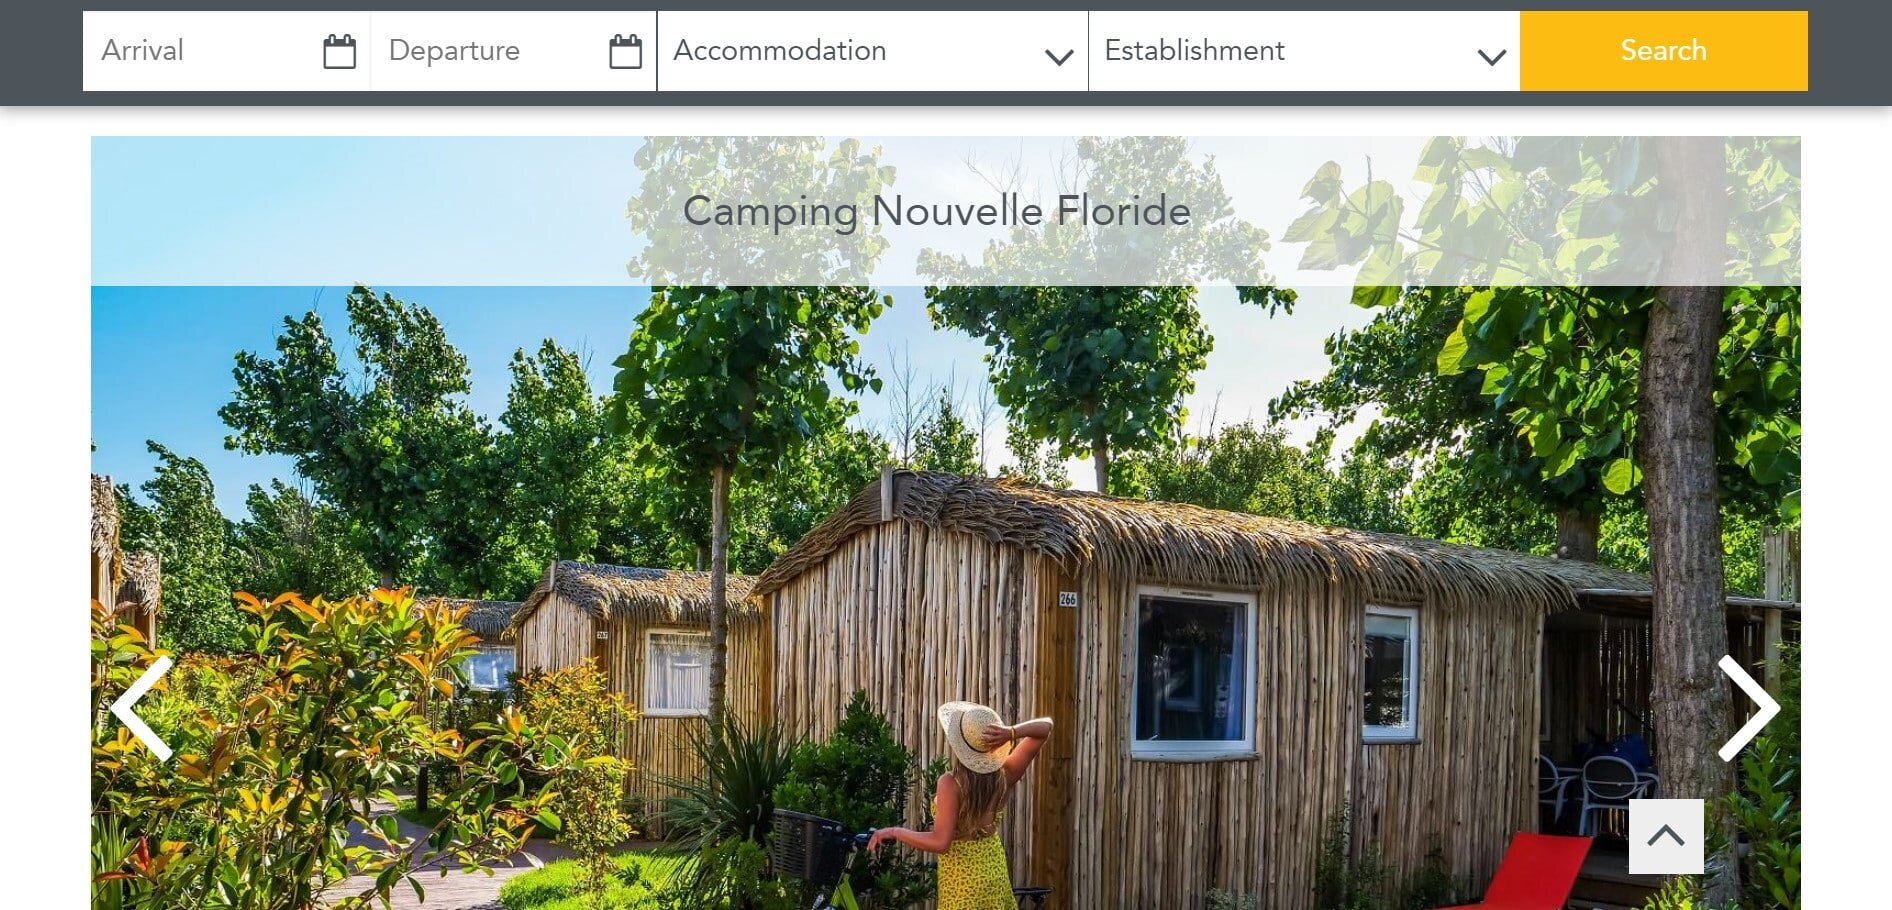 Nouvelle Flouride looks like five star camping south France at its best. Check it out for a bit of luxury camping in south France.